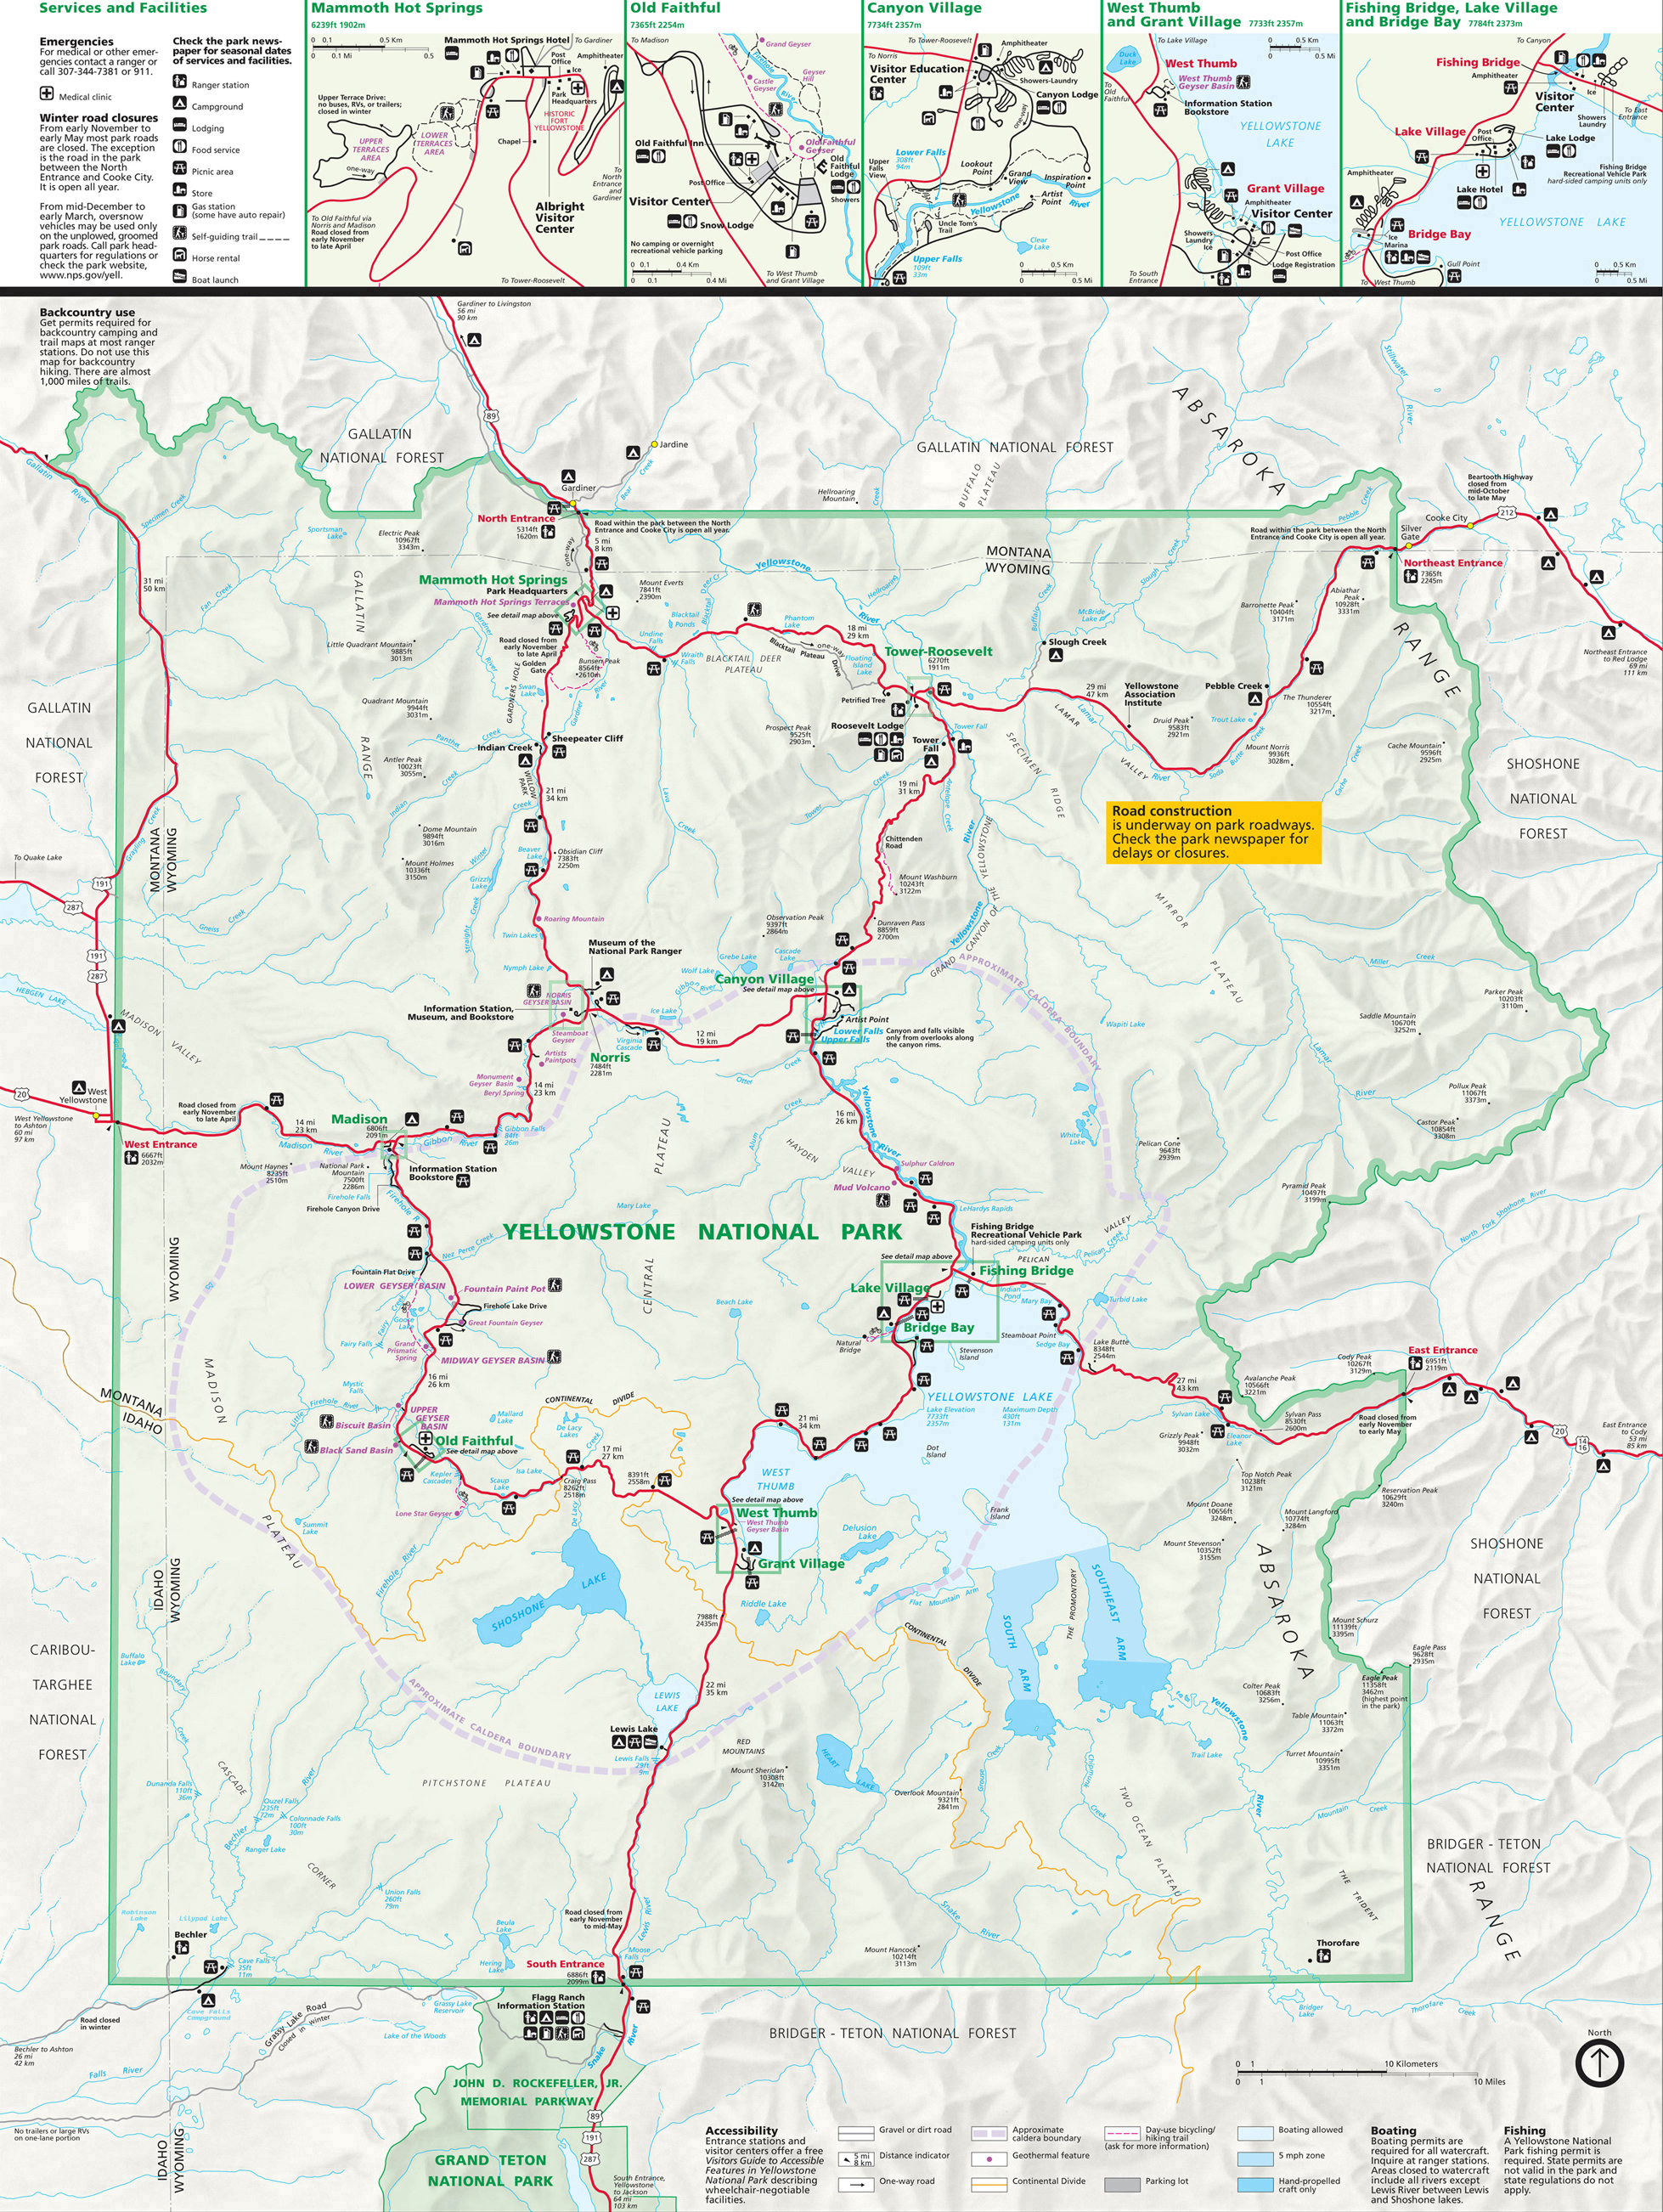 Yellowstone National Park Map Pdf Yellowstone National Park Map ~ Yellowstone Up Close and Personal Yellowstone National Park Map Pdf